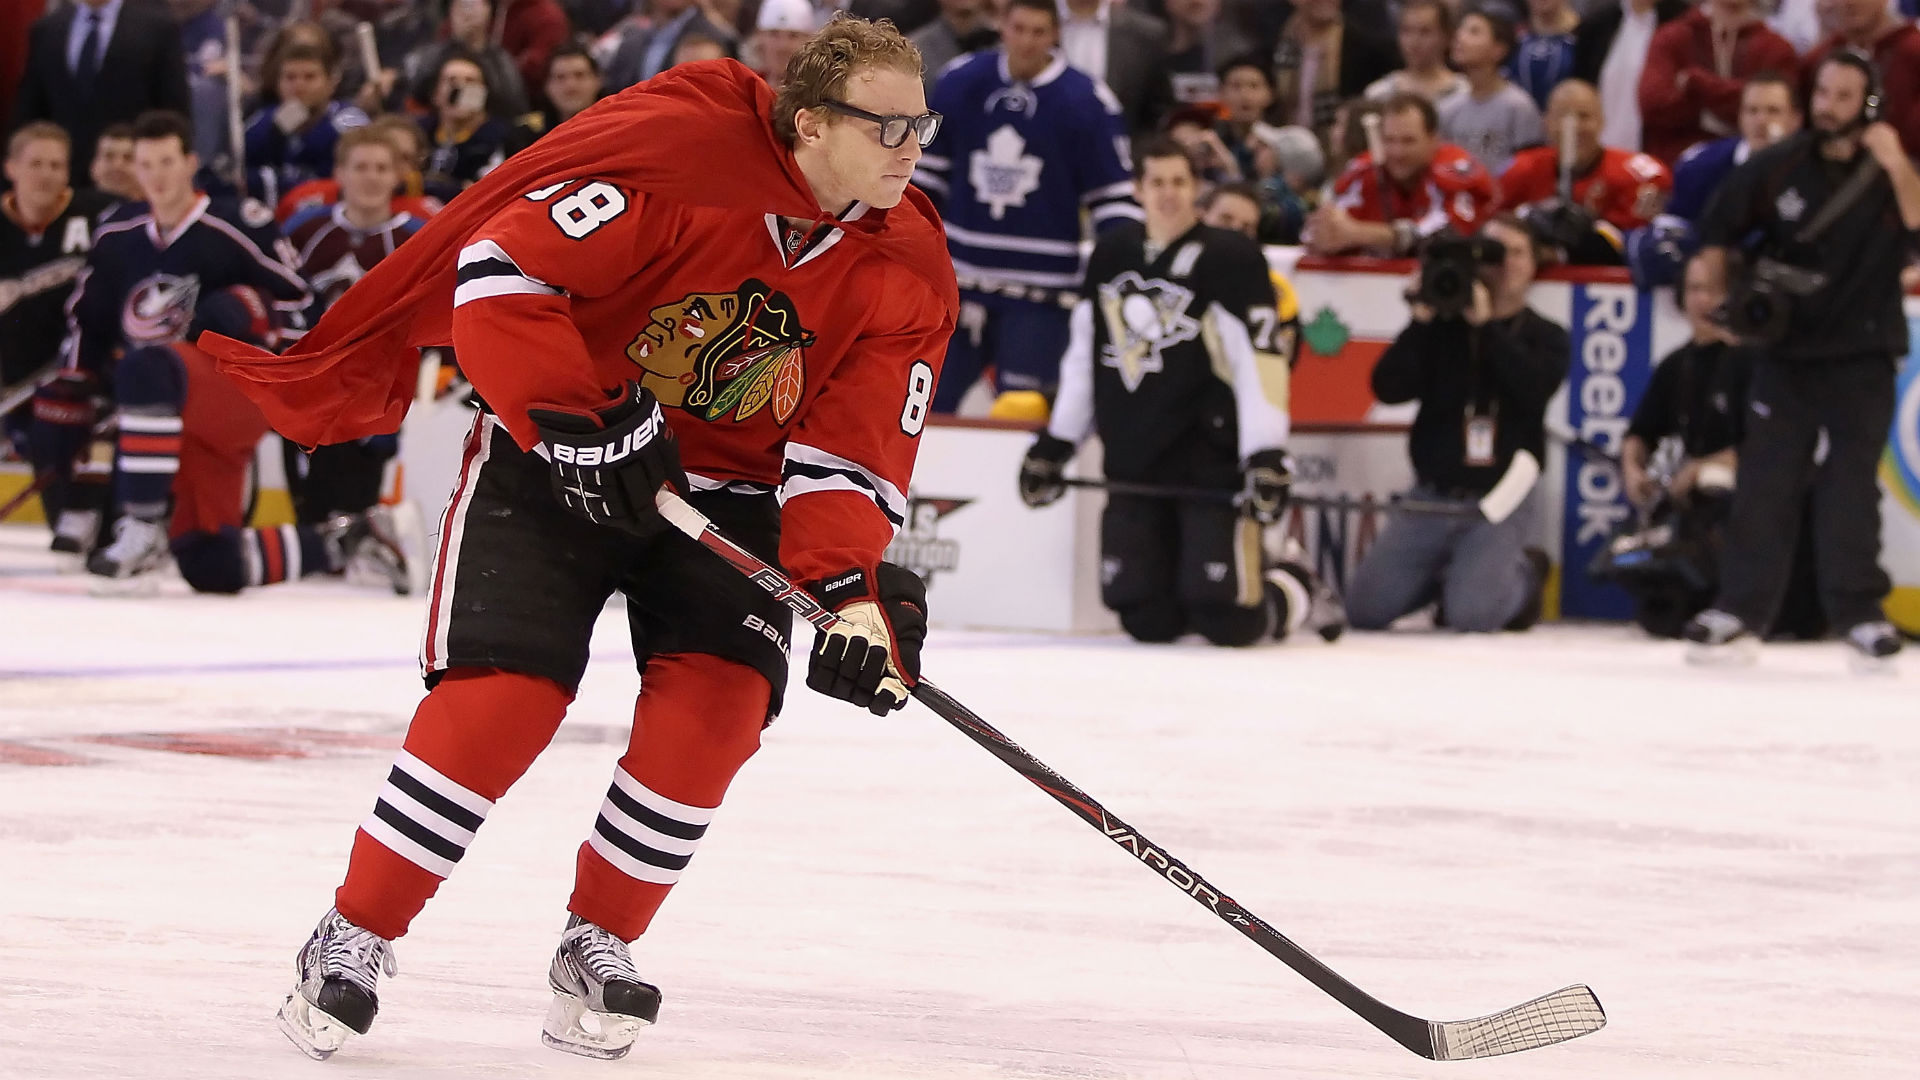 patrick-kane-011415-FTR-getty.jpg